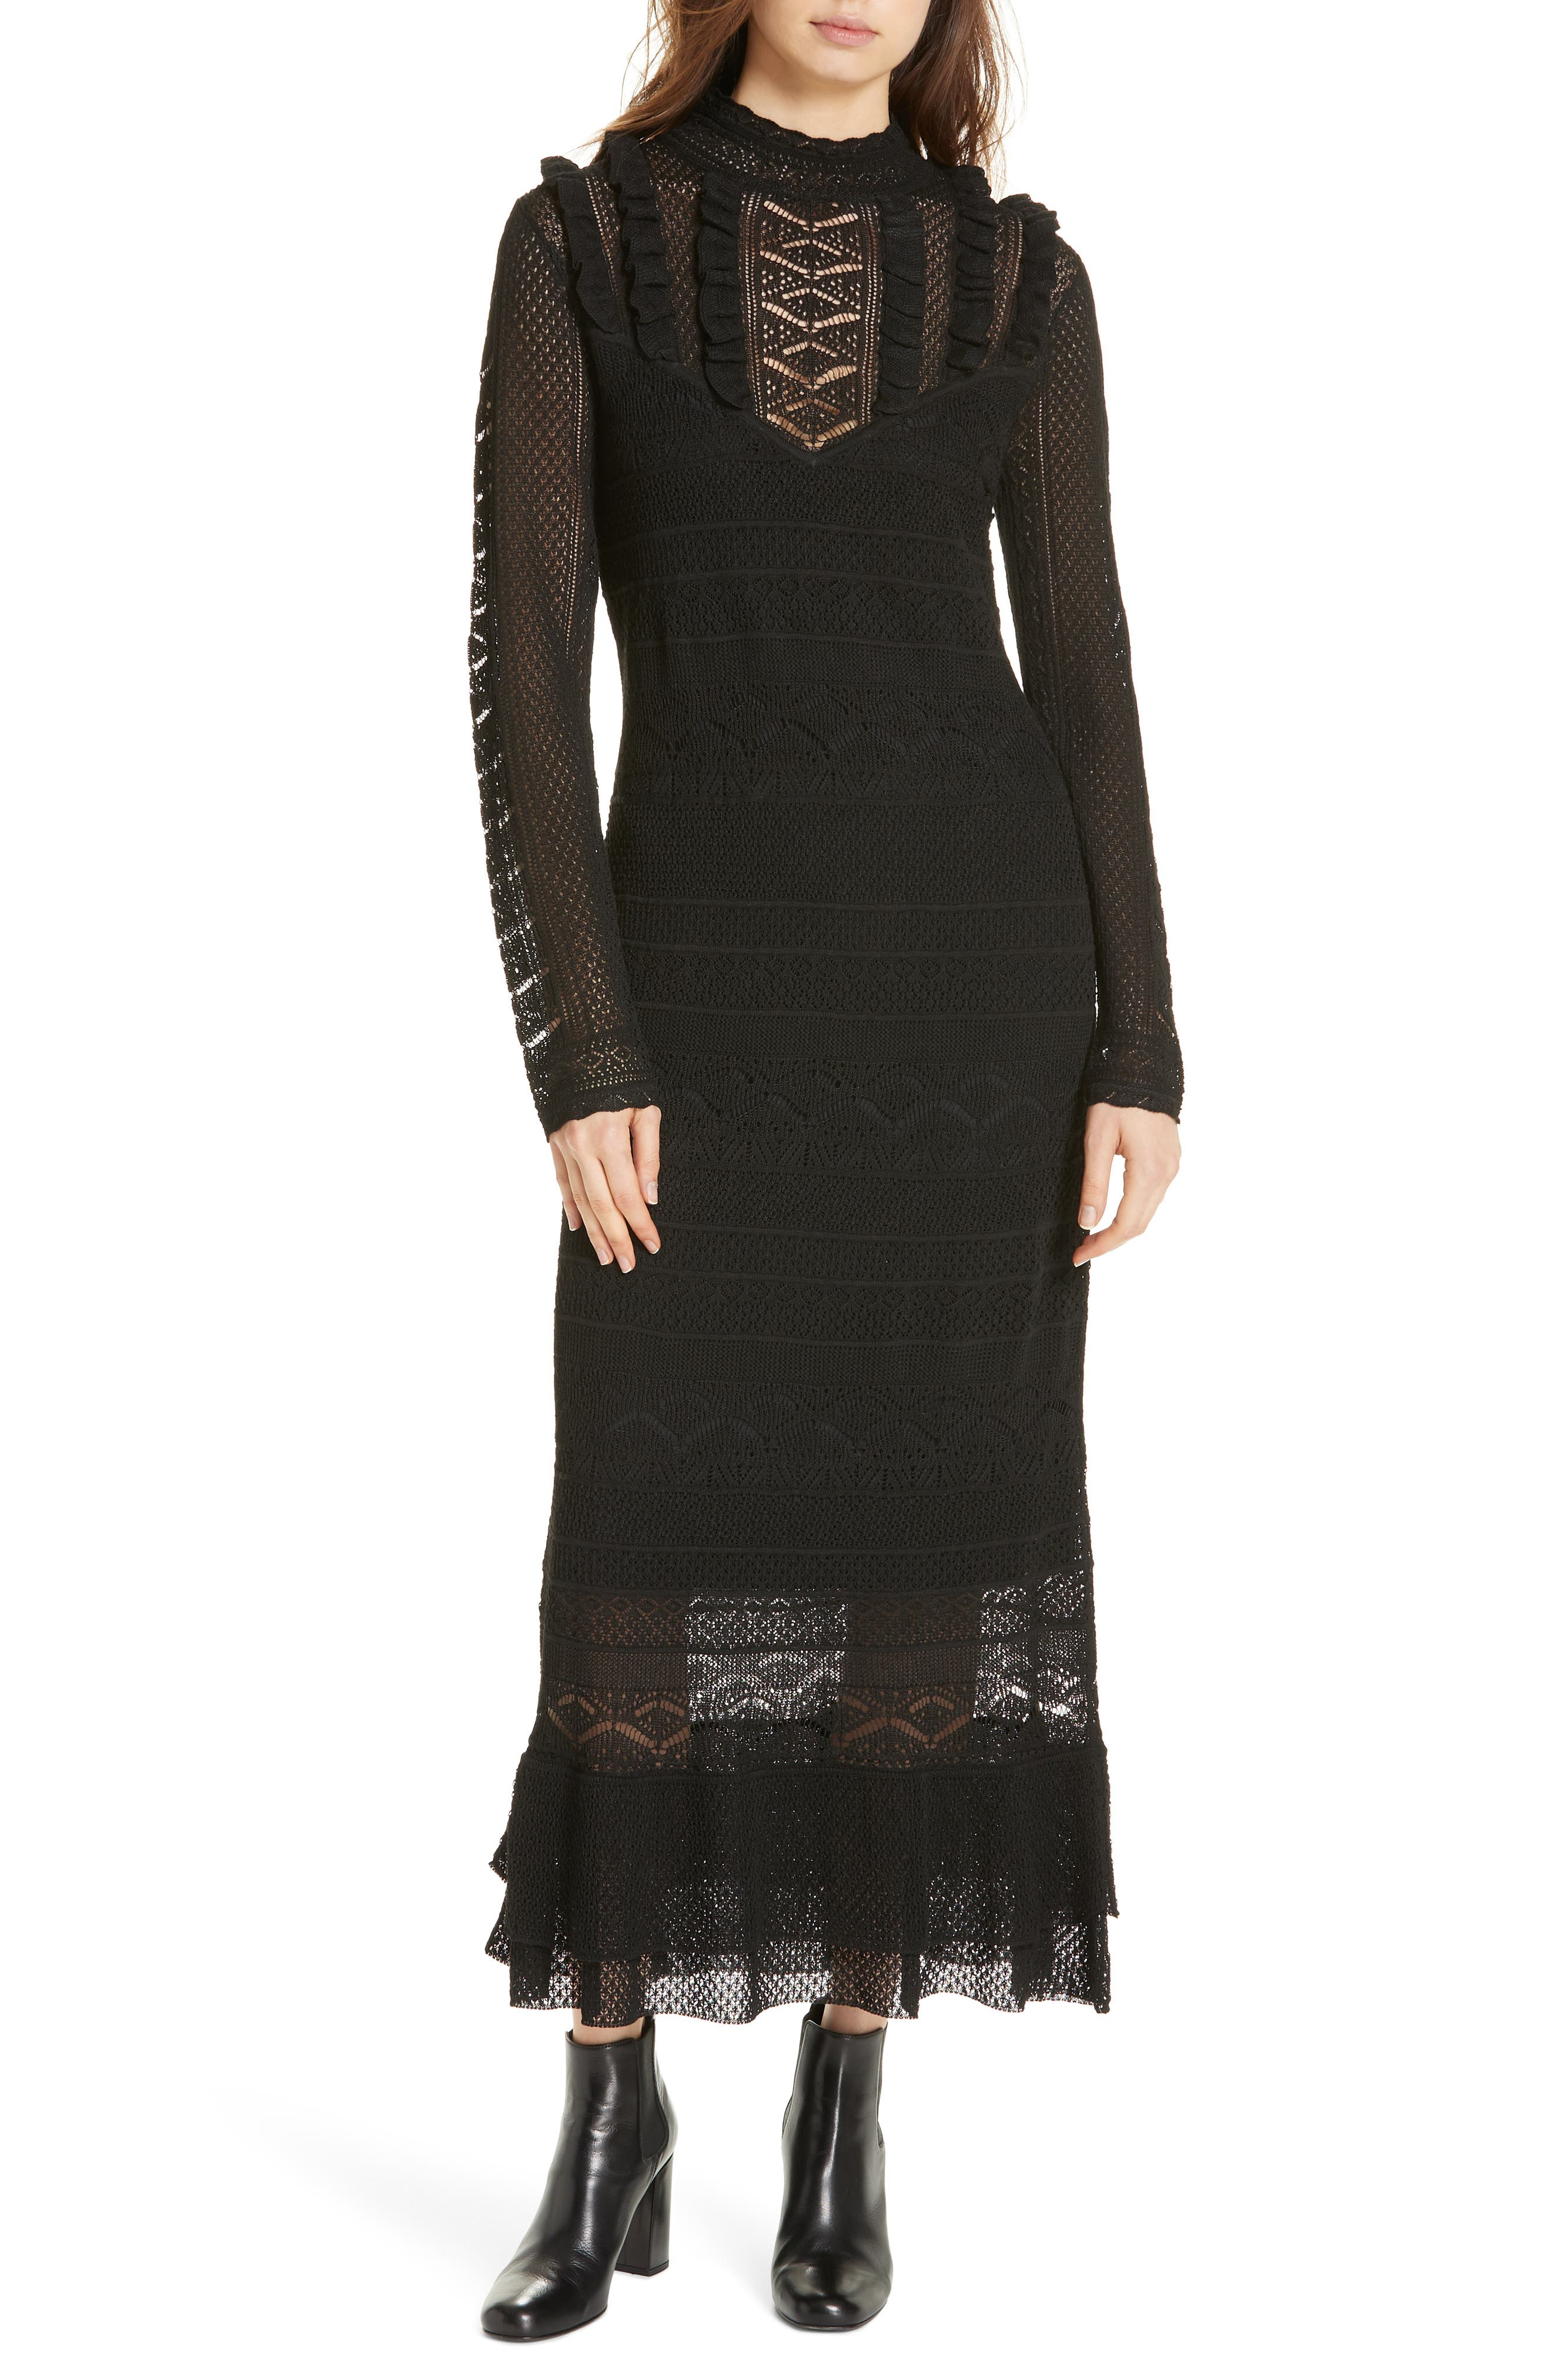 Pointelle Lace Midi Dress,                         Main,                         color, 001